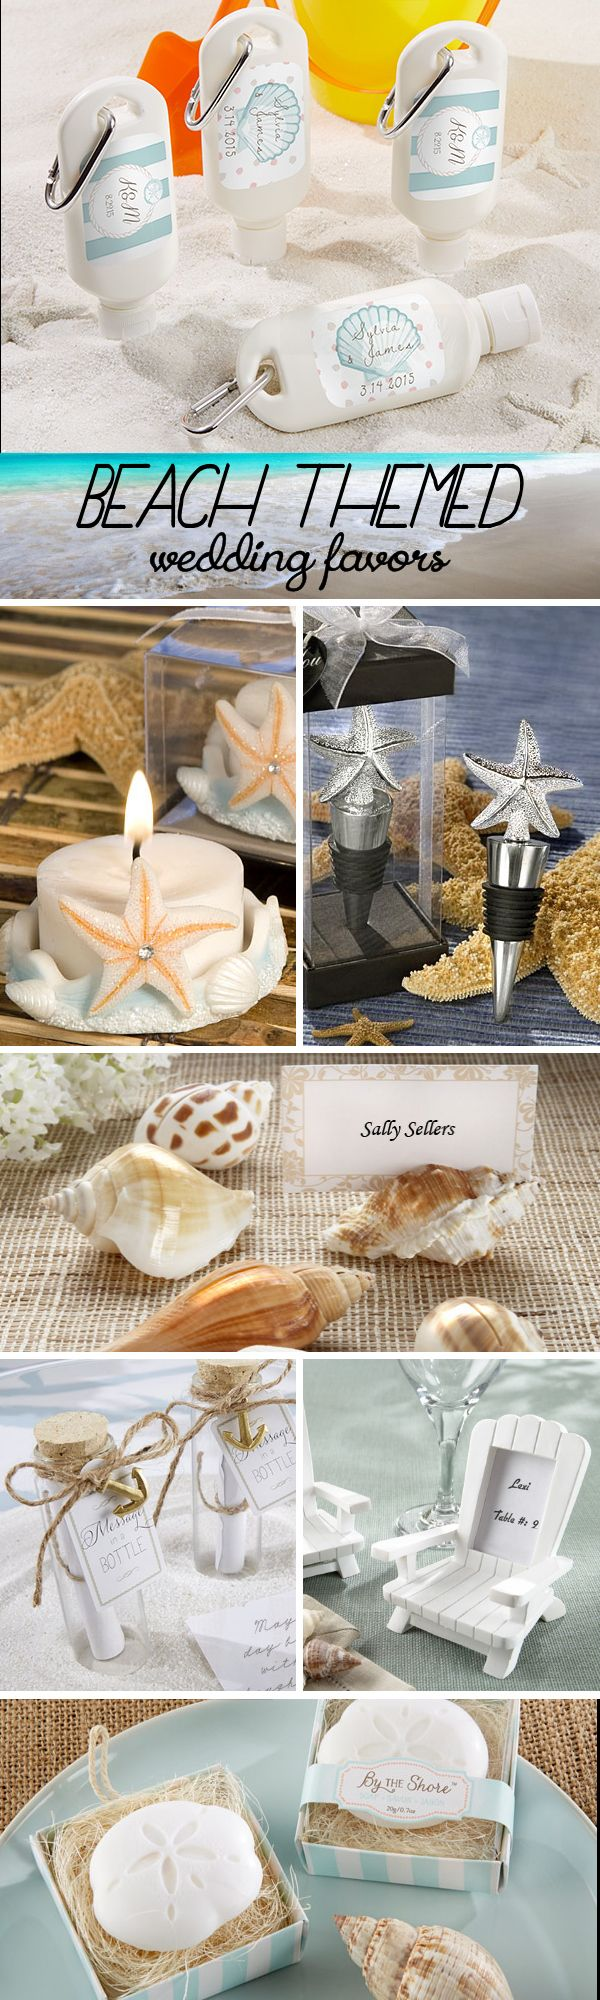 beach wedding shower favor ideas%0A     Beach Themed Wedding Favors that your guests will love